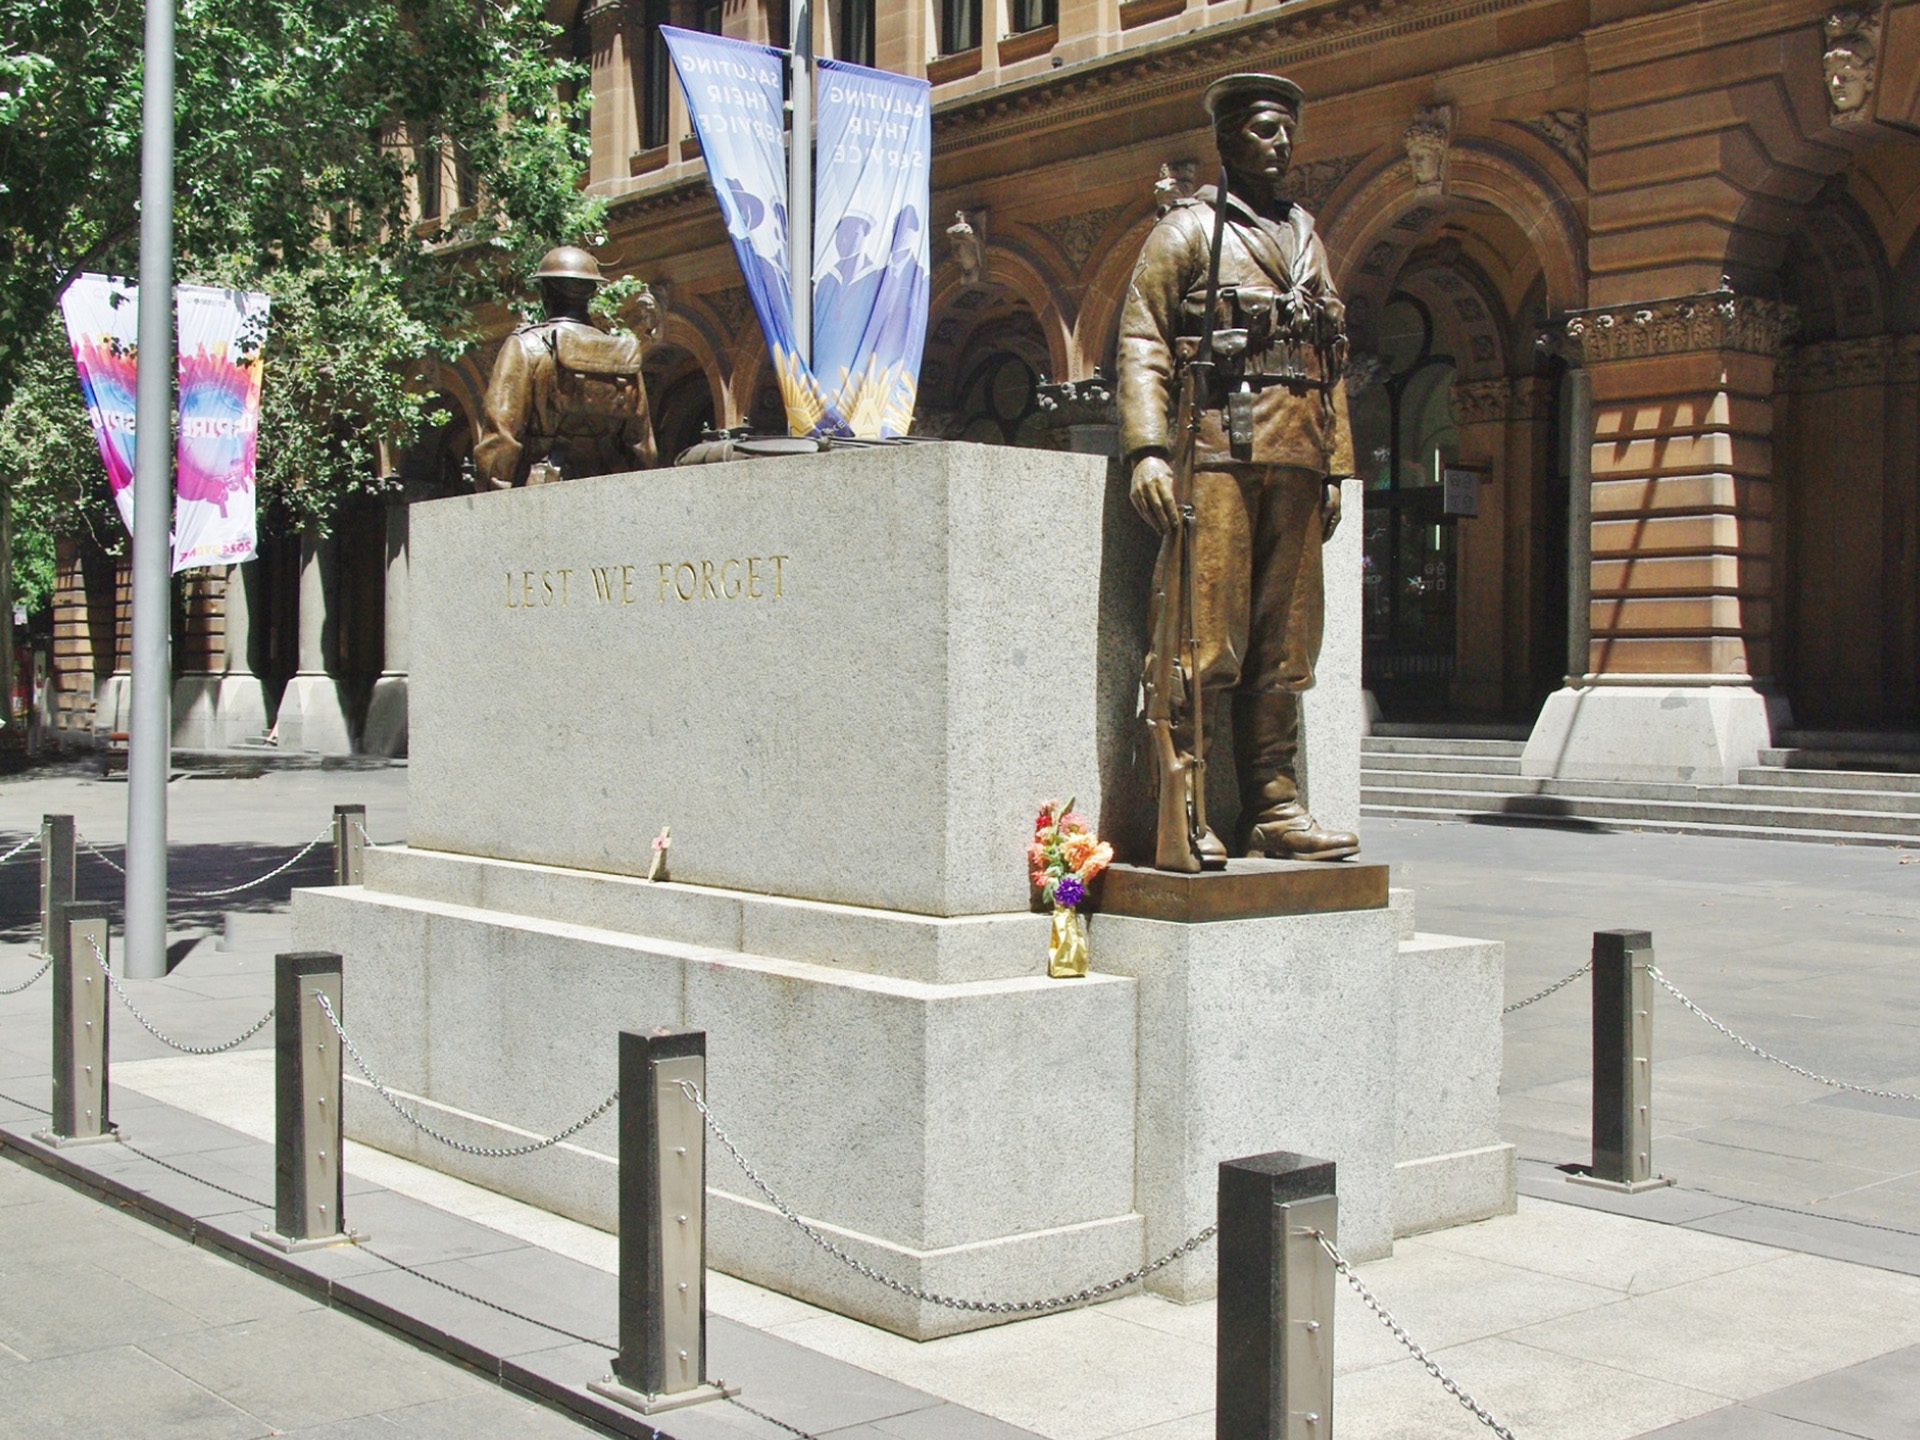 The Cenotaph, Martin Place. Provided by Peter Williams, 2014.